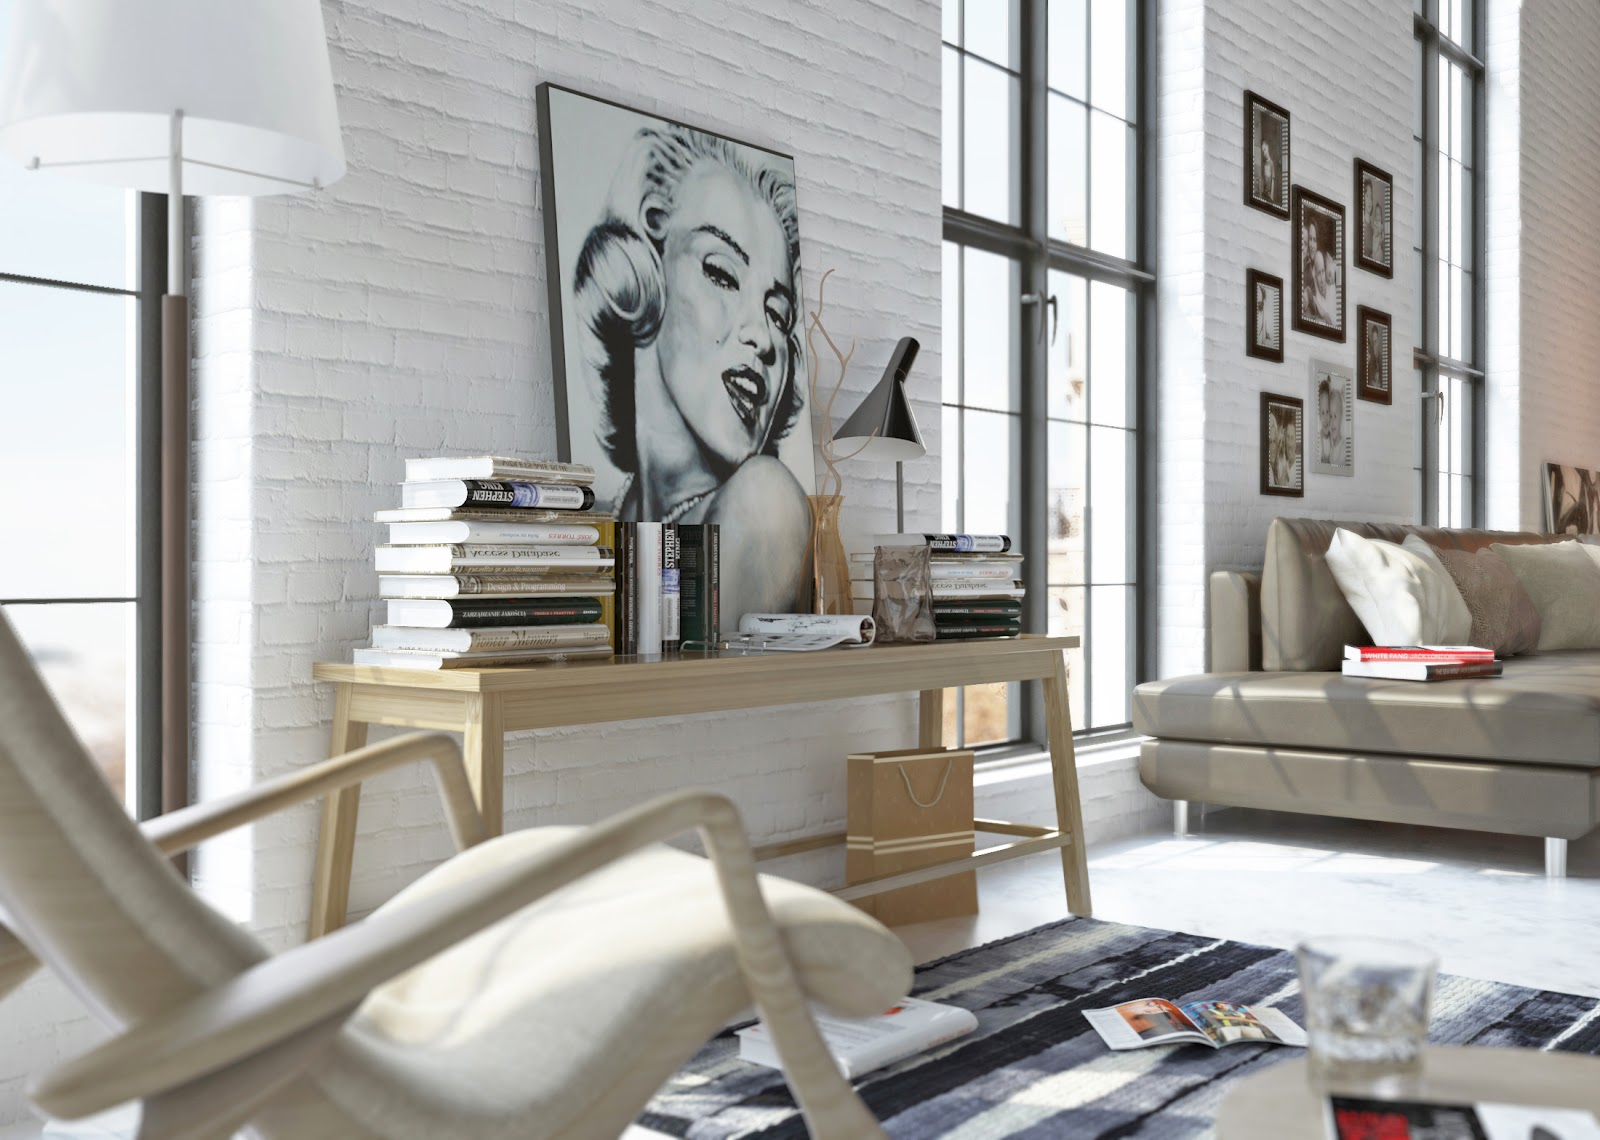 Inspired by chicago loft scene s bertrand benoit by acuzzi with 3dsmax vray photoshop